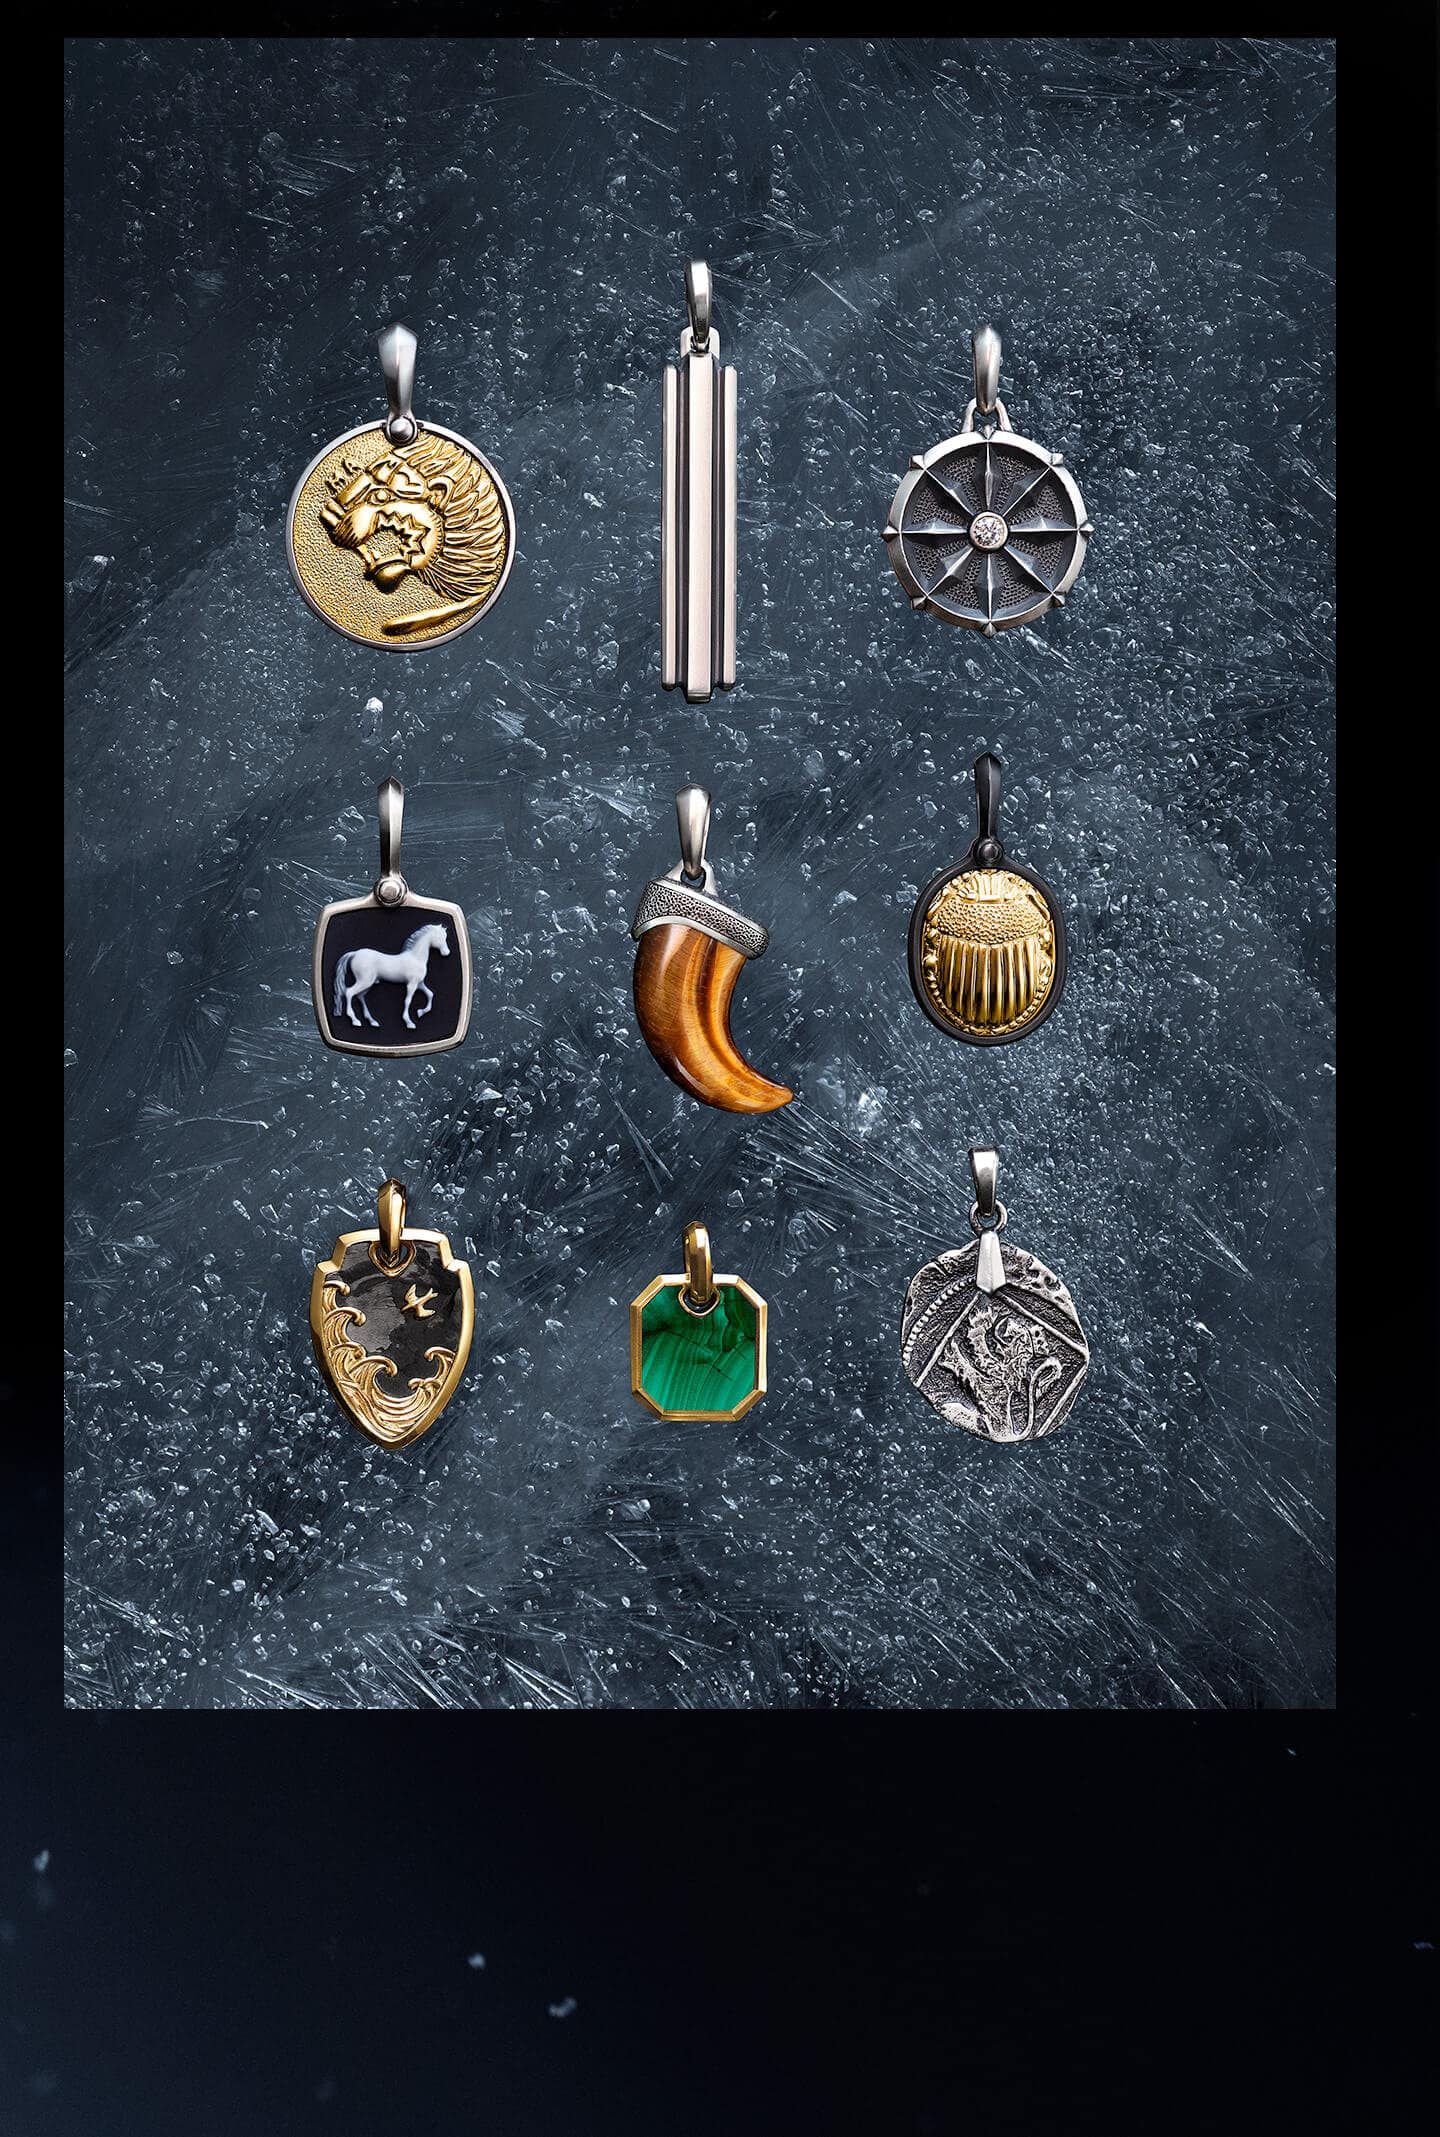 A color photo shows a three-by-three grid of nine David Yurman men's amulets laying atop a dark, icy surface dusted with snowflakes. The jewelry is crafted from sterling silver, black titanium or 18K yellow gold. In the top row, from left, is a Petrvs lion amulet with 18K gold, a Deco ingot tag and a Maritime wheel with a reverse-set white diamond. In the middle row, from left, is a Petrvs horse amulet with banded agate, a claw amulet in tiger's eye and a Petrvs scarab amulet with 18K gold. In the bottom row, from left, is a Waves shield amulet with forged carbon, a Roman amulet with malachite and a Shipwreck coin amulet.